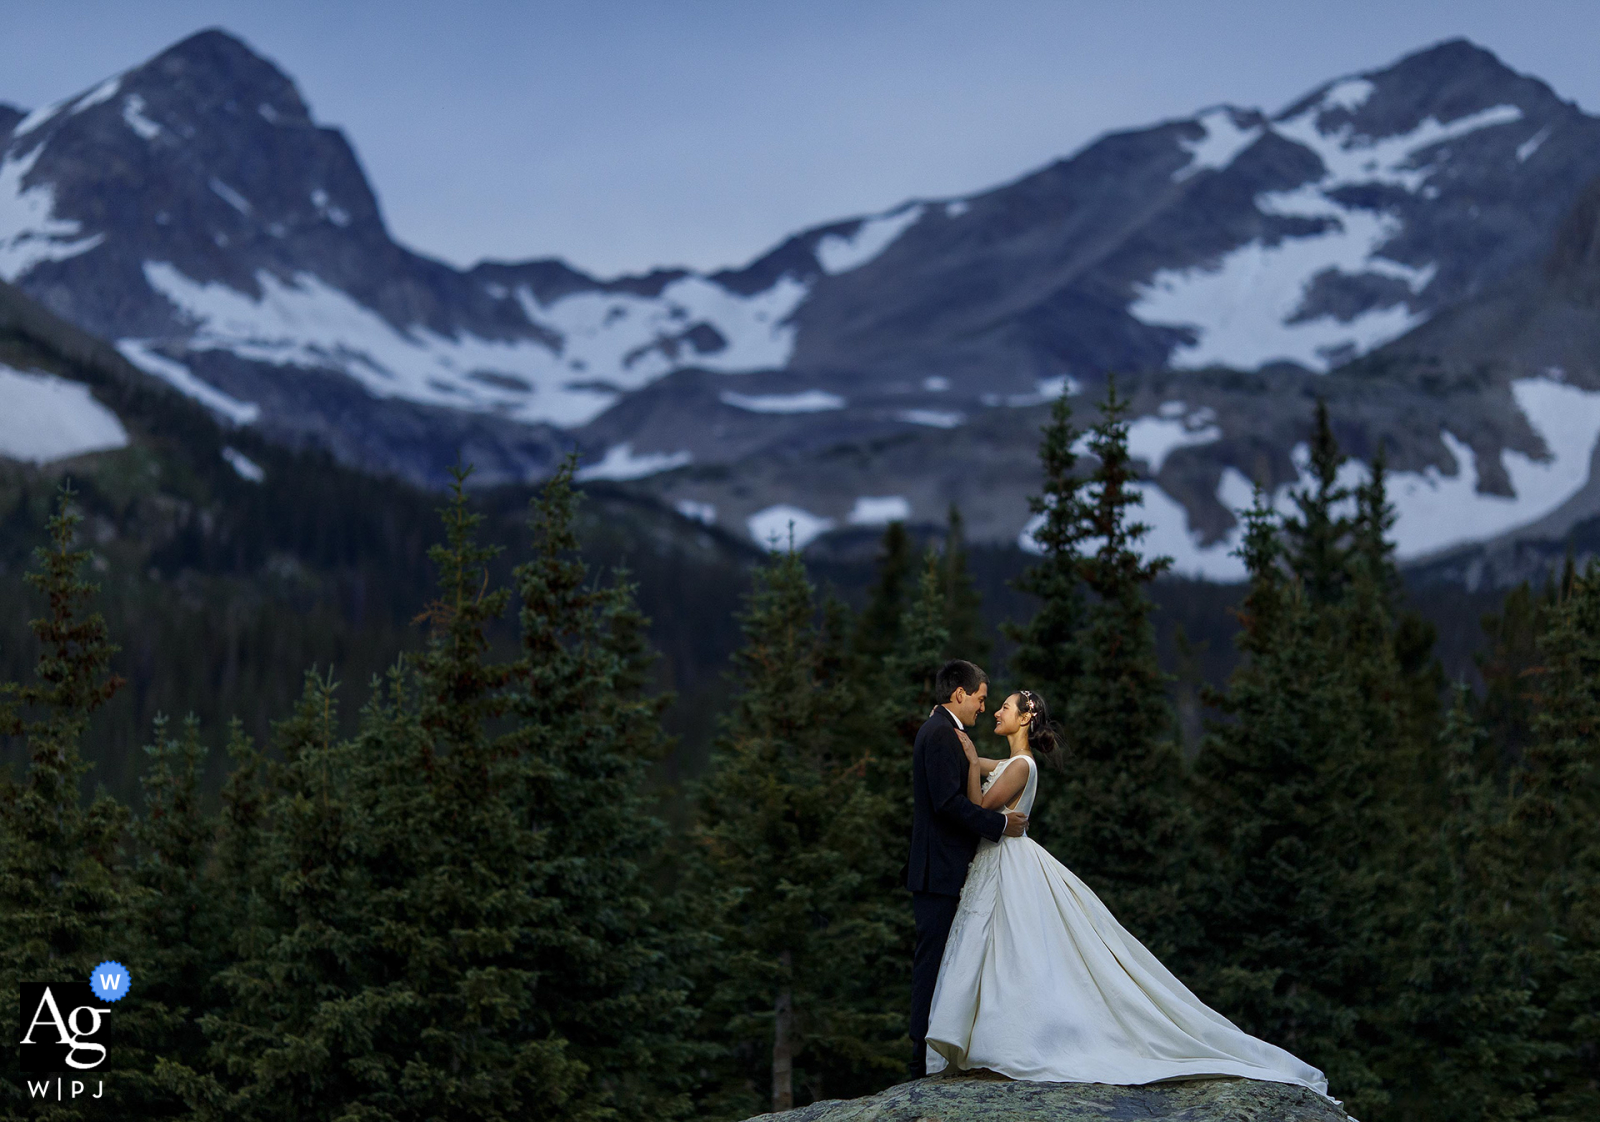 Brainard Lake, Ward, CO creative couple wedding portrait of the bride and groom posing together on a rock at twilight following their elopement